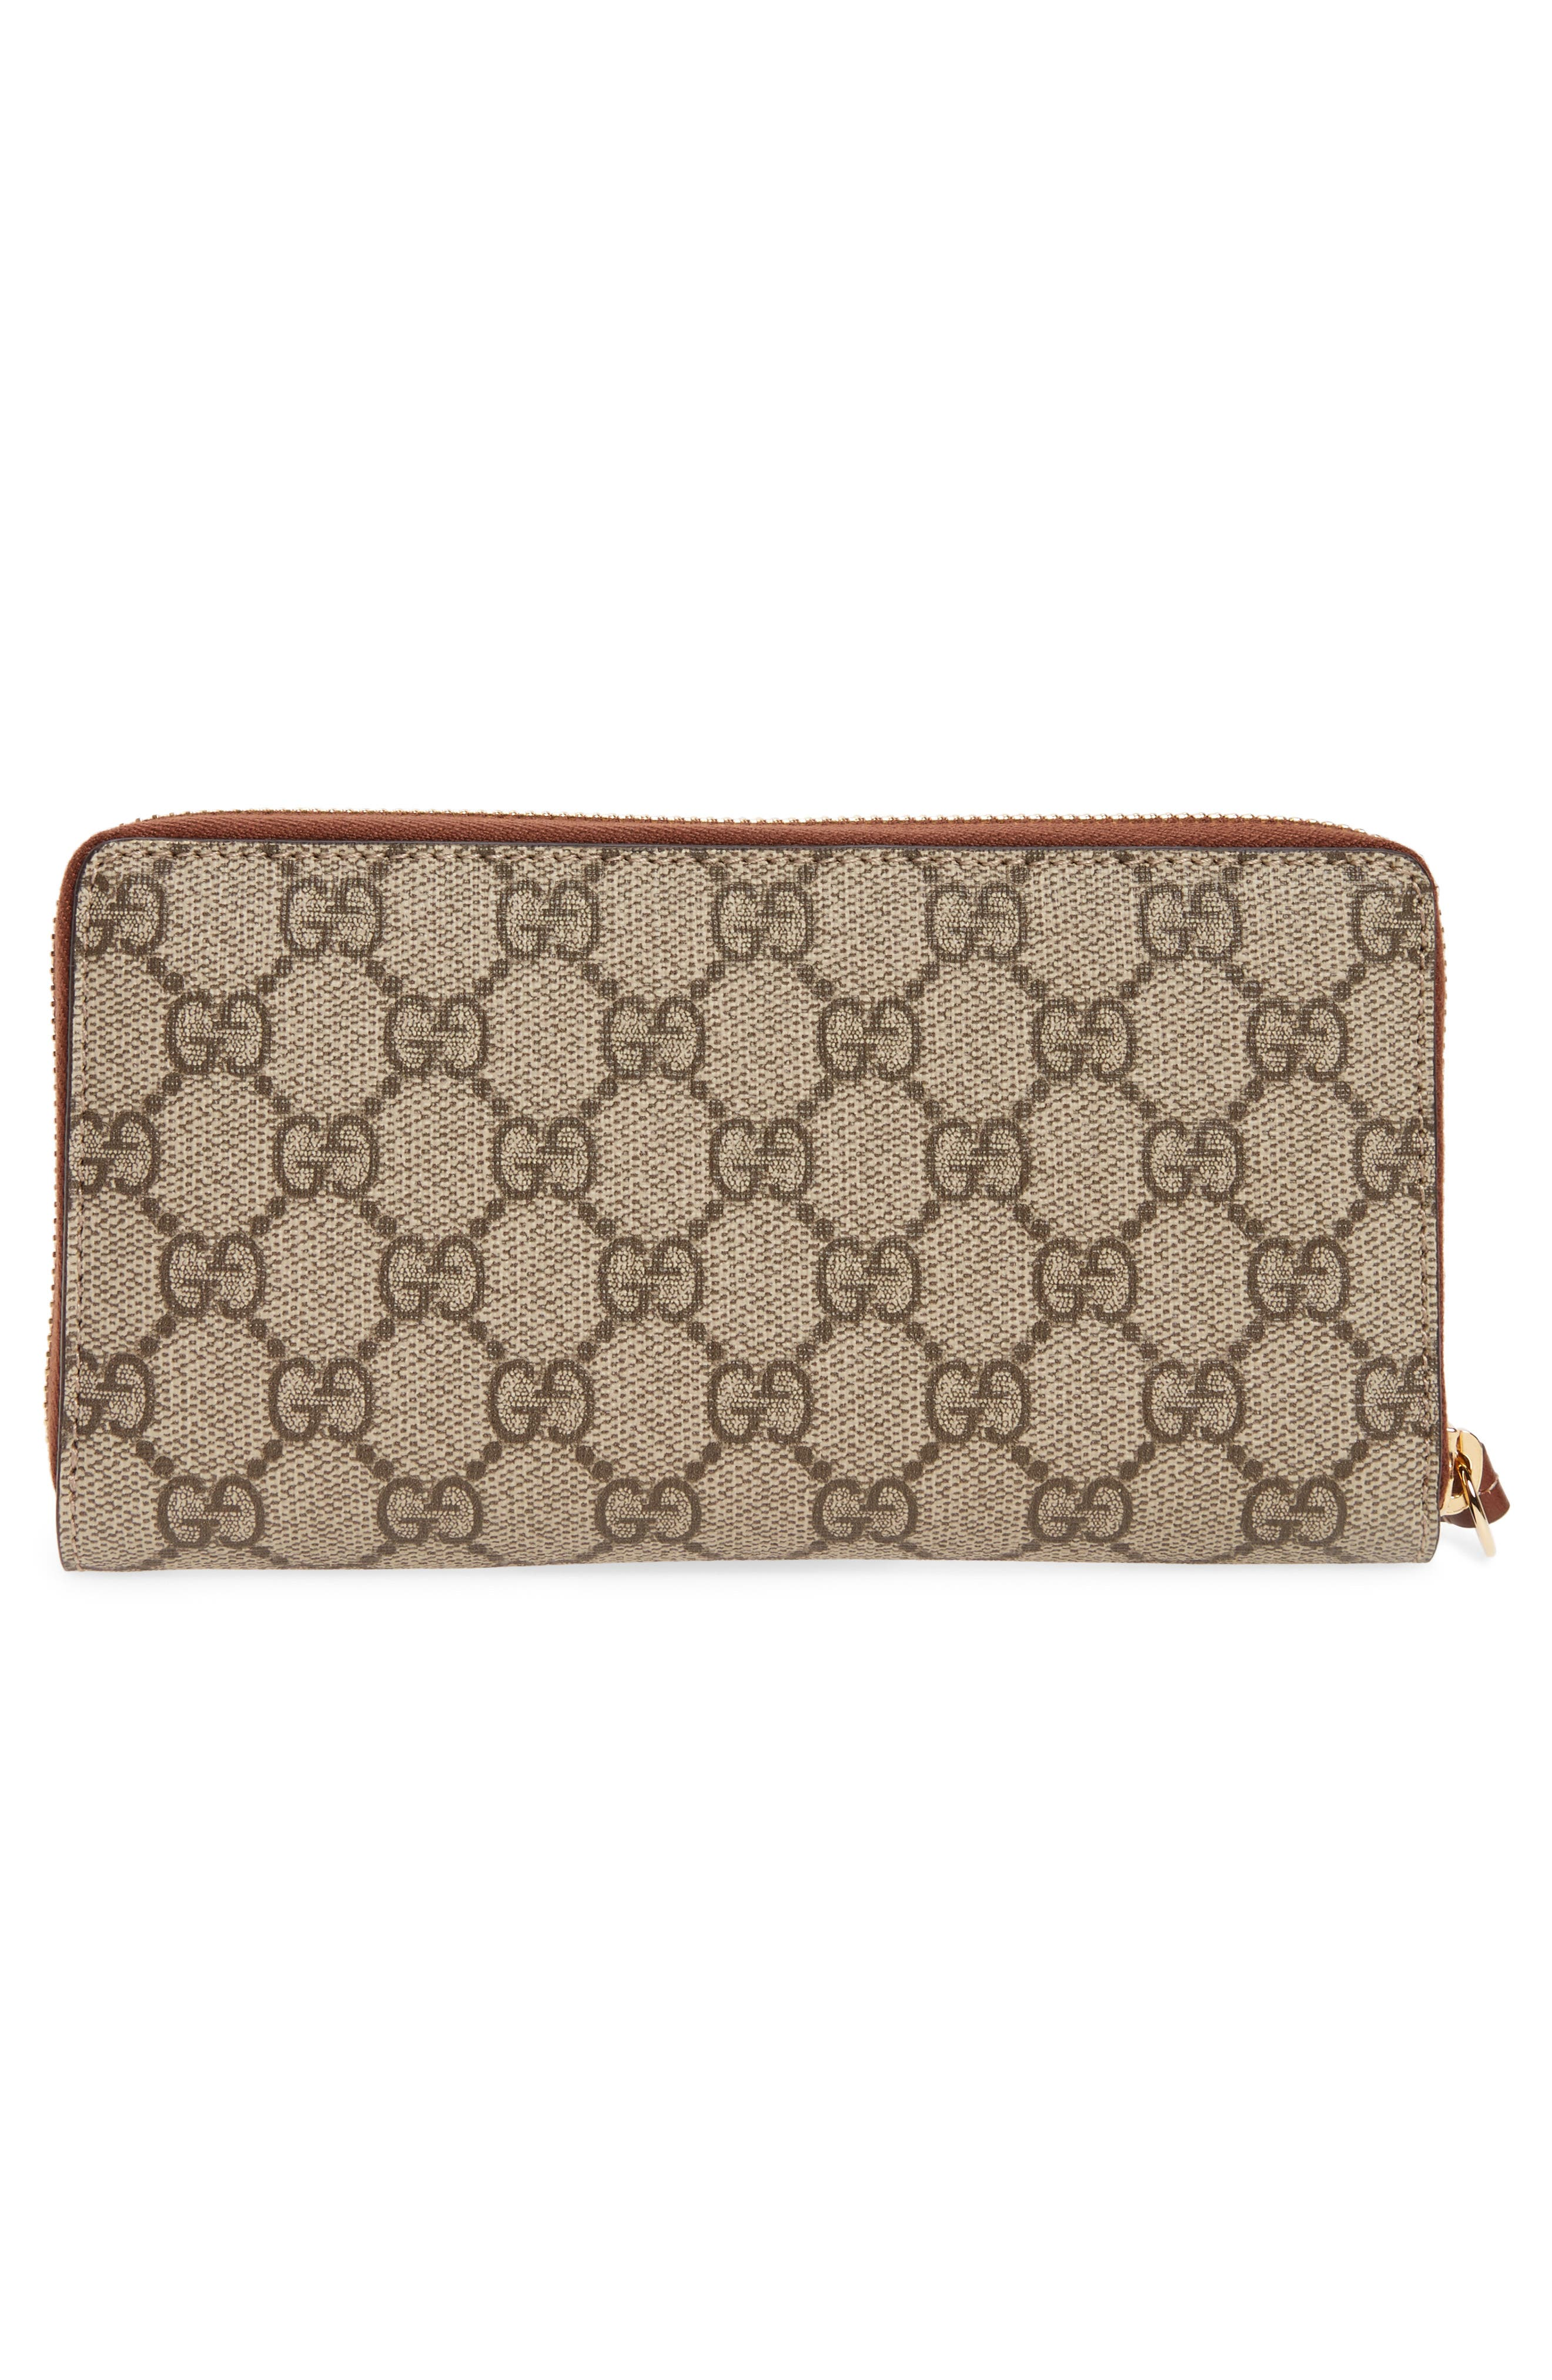 GG Supreme Zip Around Canvas Wallet,                             Alternate thumbnail 3, color,